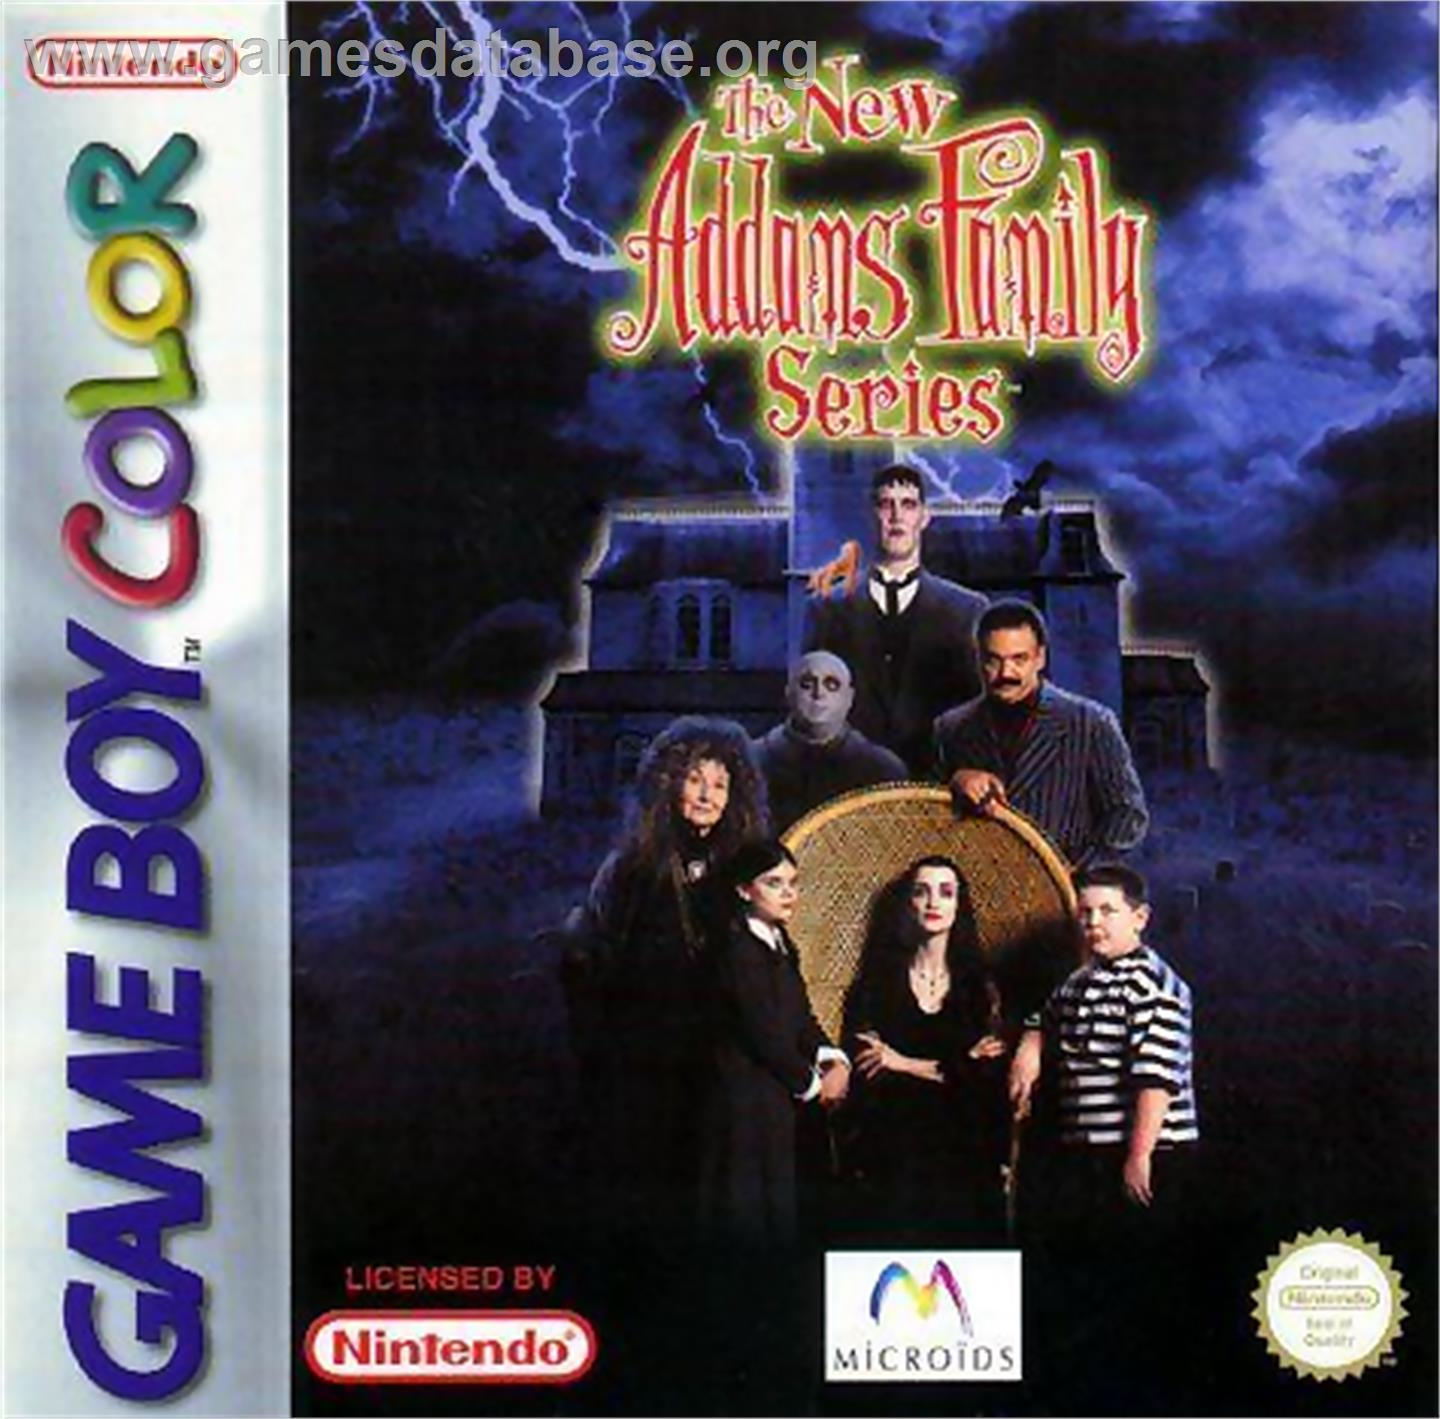 New Addams Family Series - Nintendo Game Boy Color - Artwork - Box